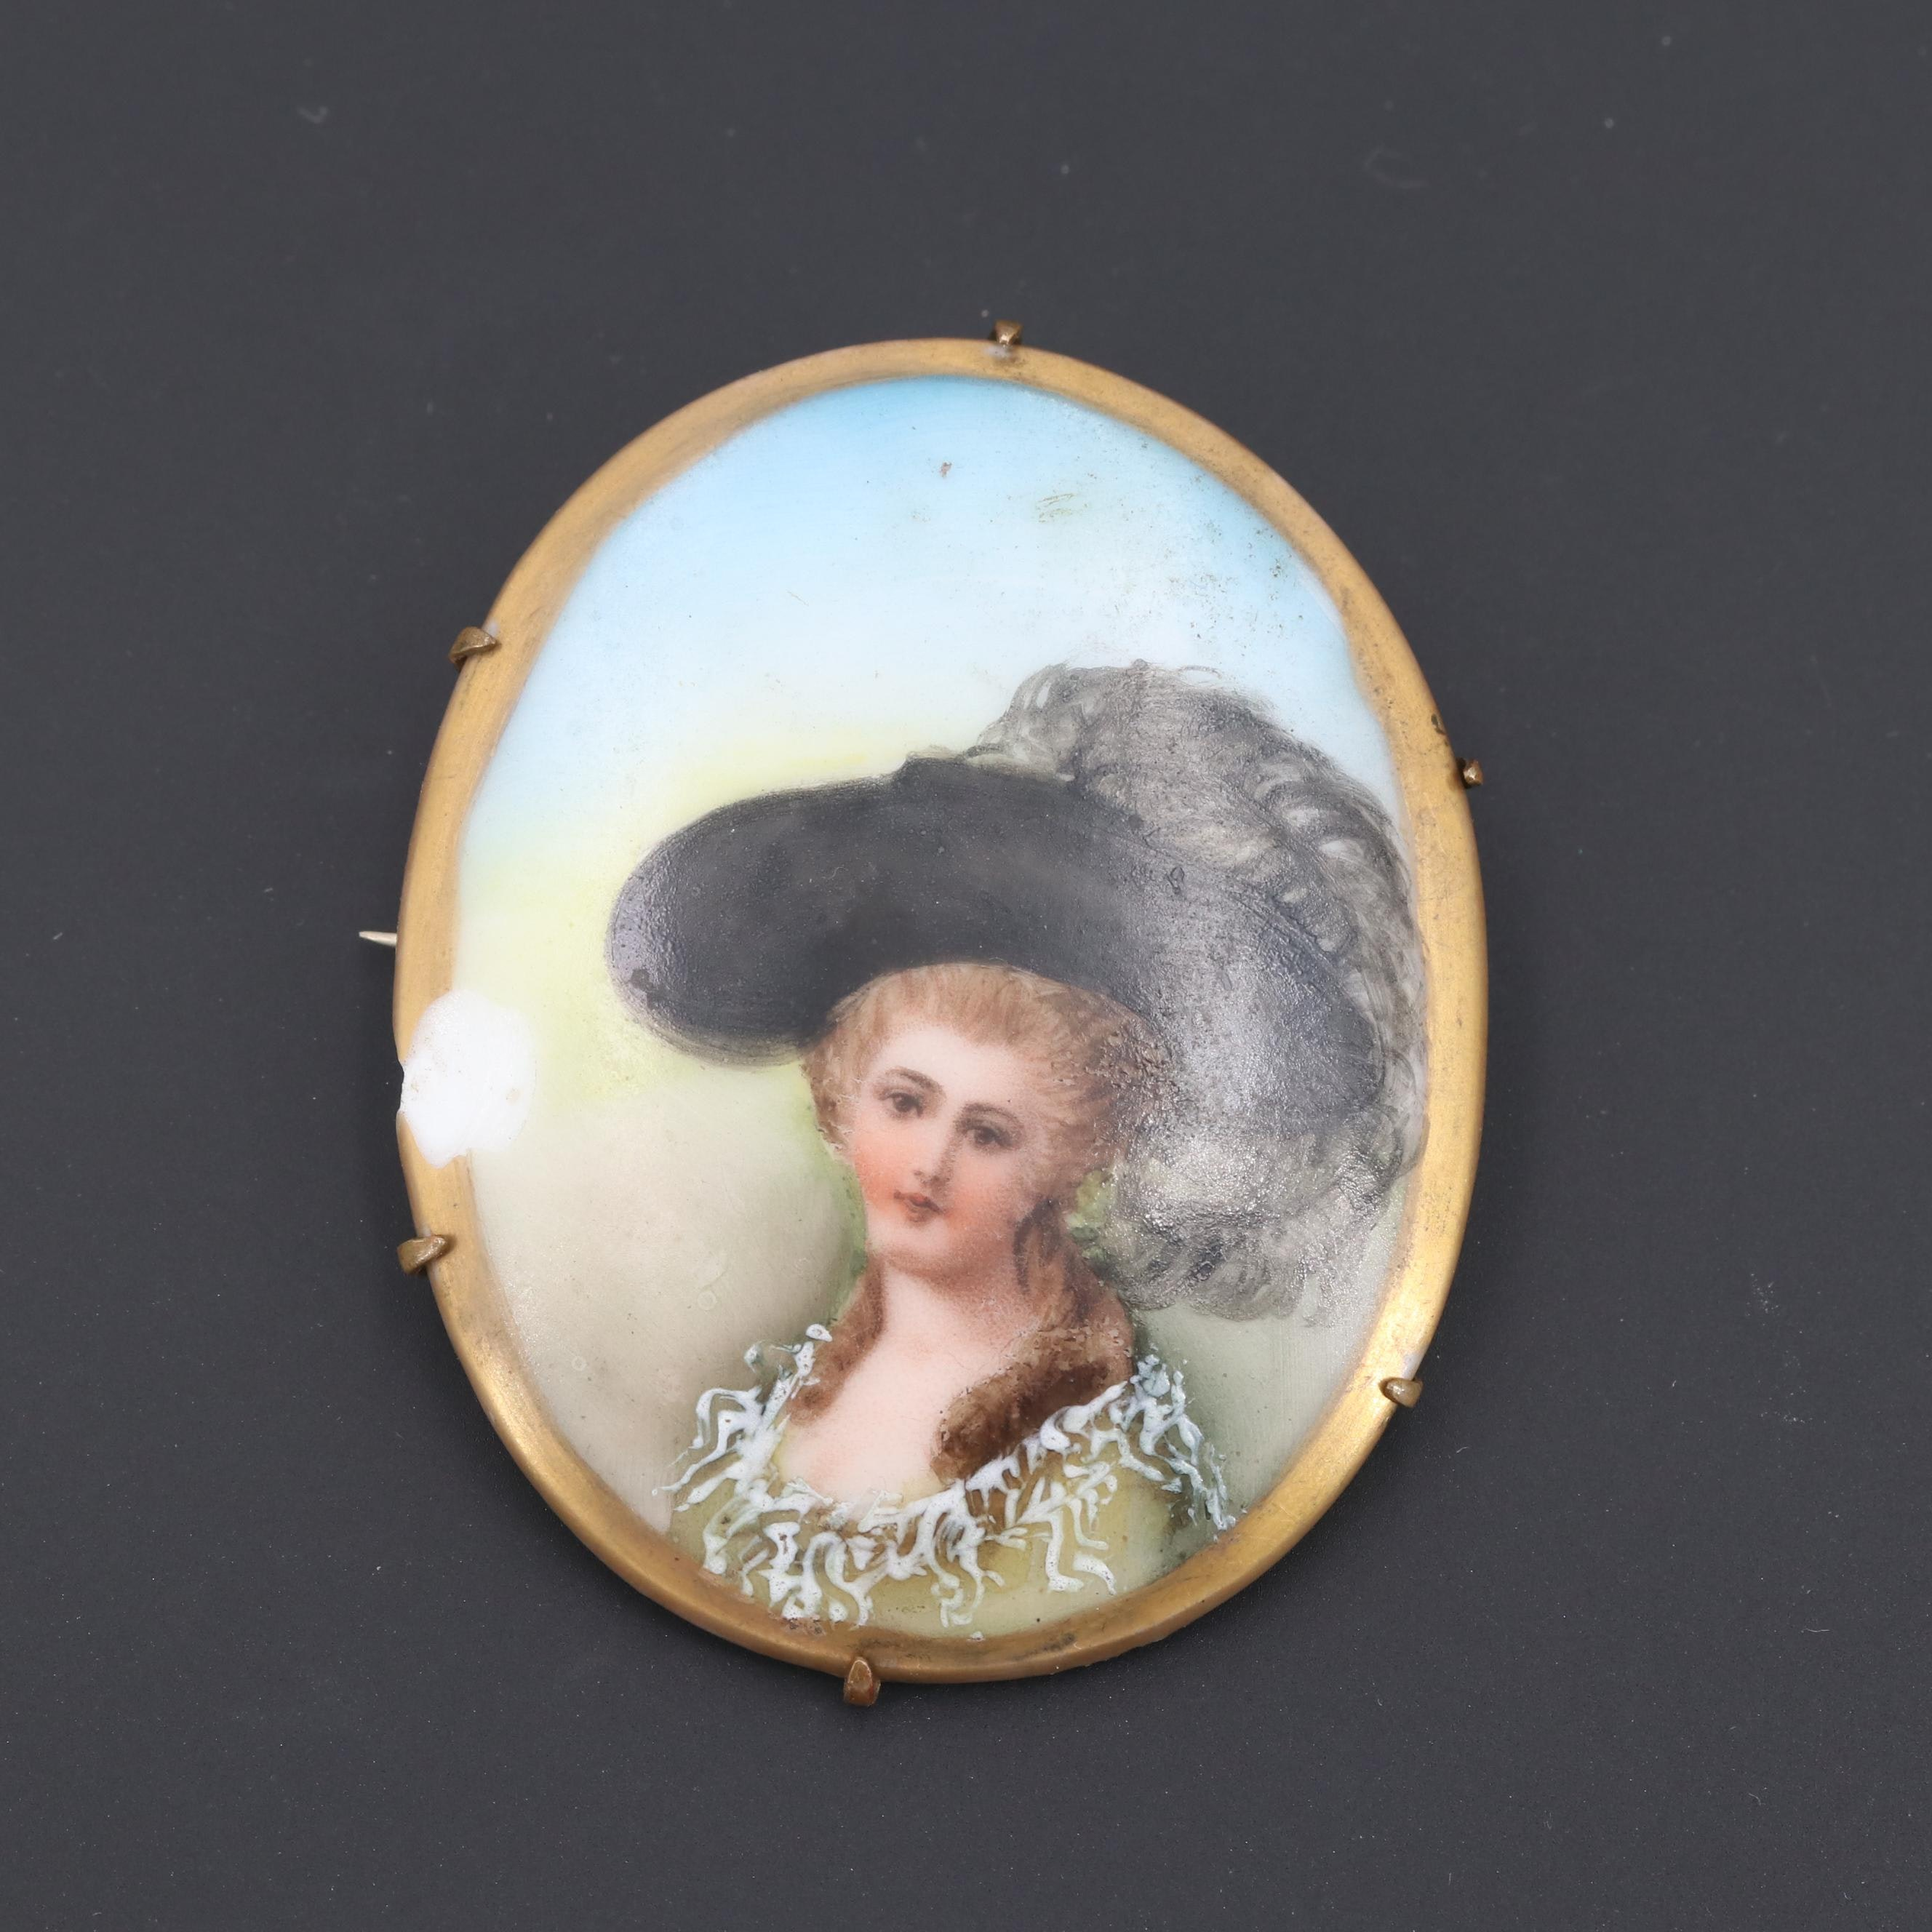 Gold Tone Glass Portrait Brooch